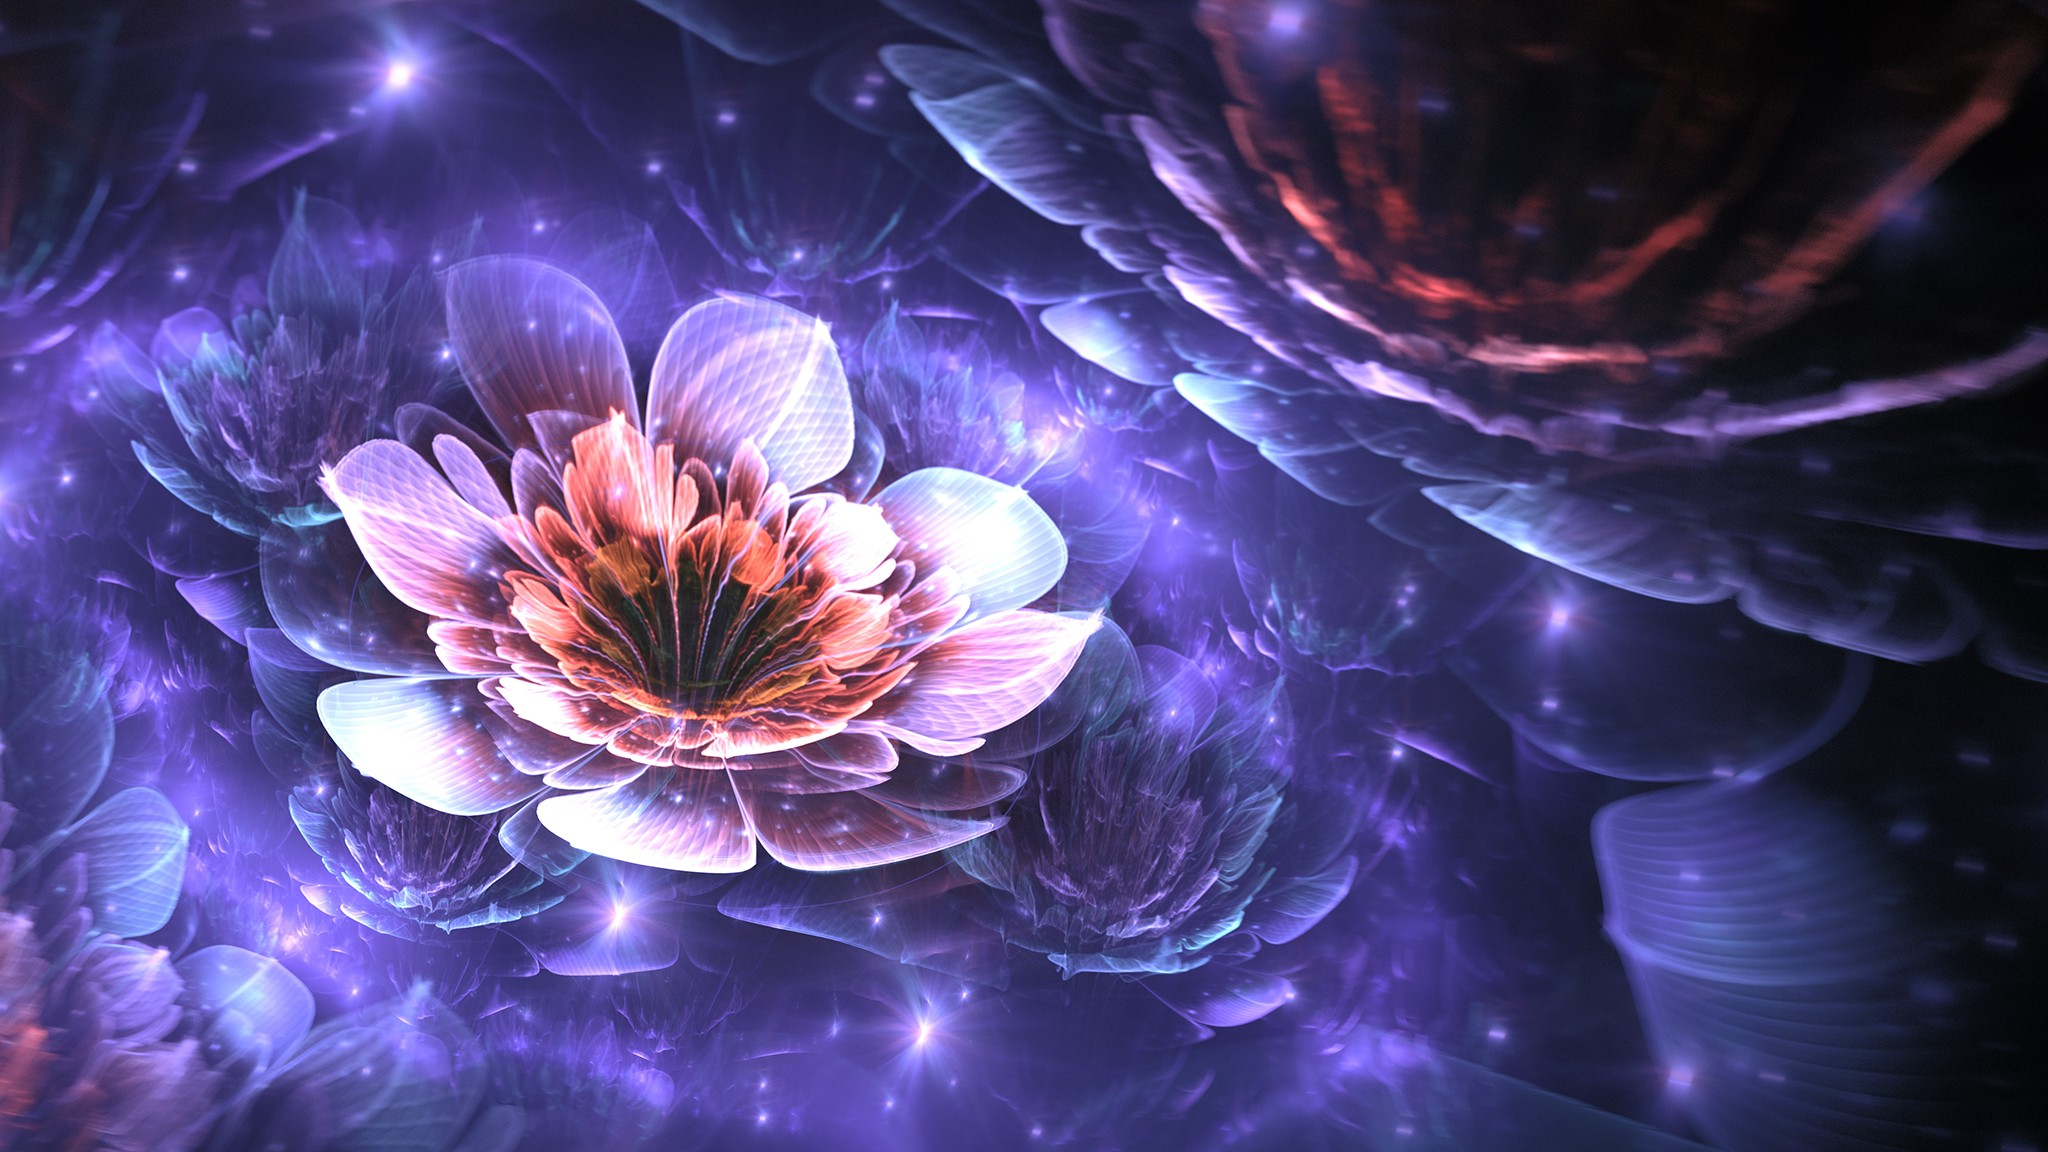 223049-fractal-Apophysis-flowers-digital